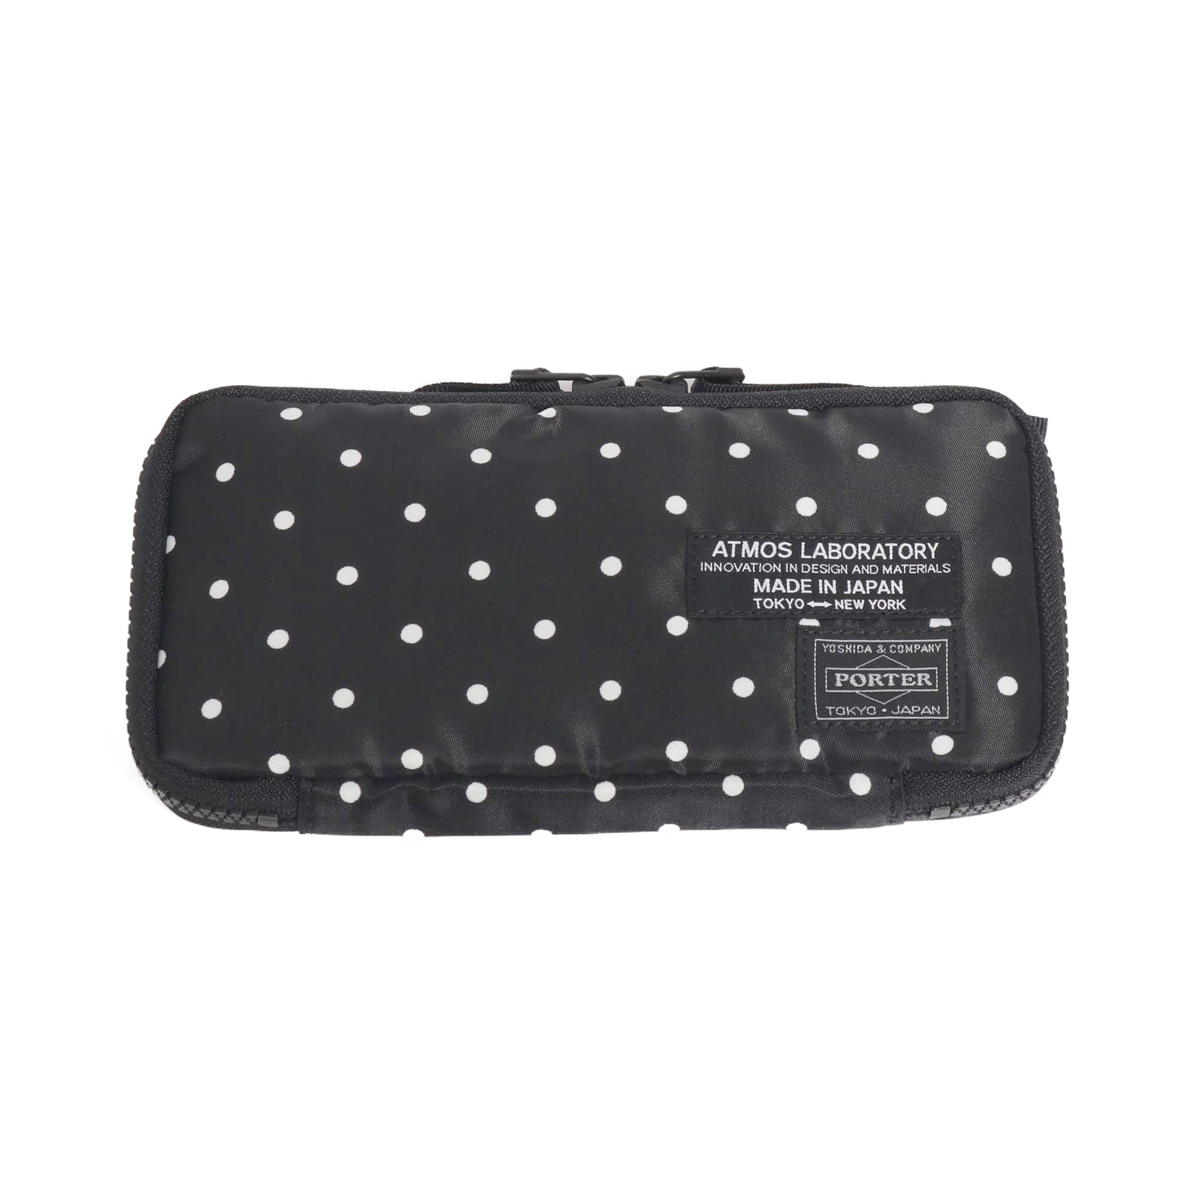 PORTER x ATMOS LAB DOT WALLET L